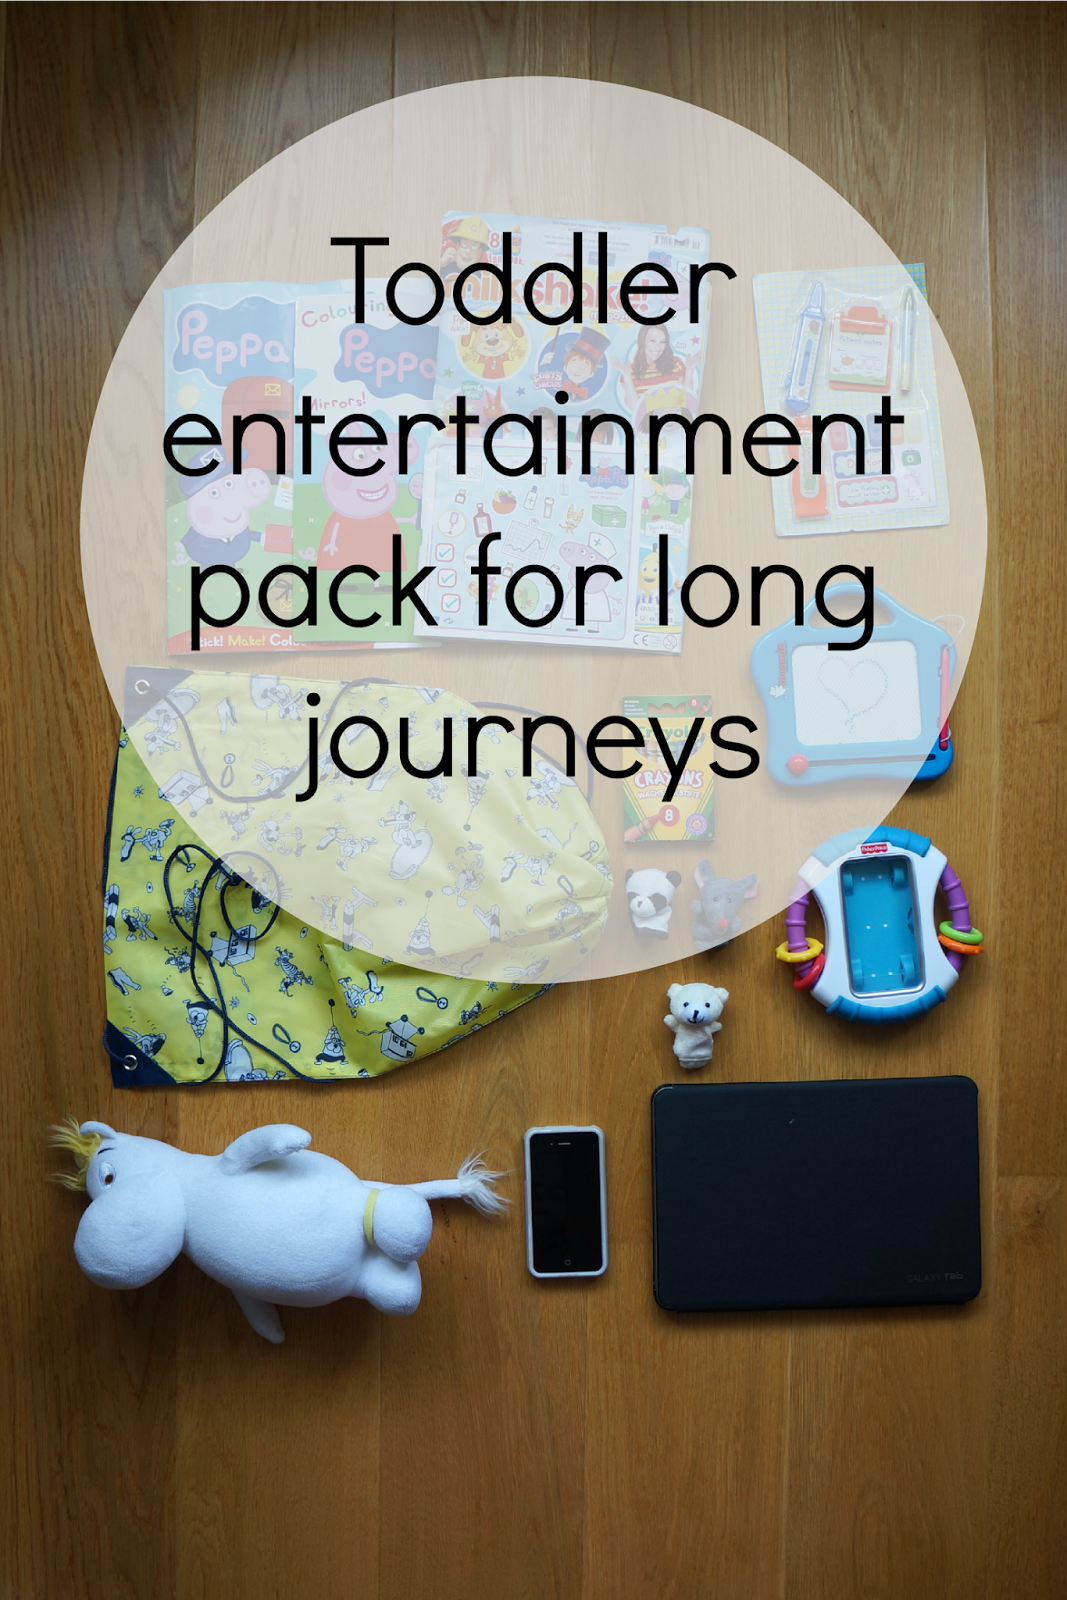 10 ideas for toddler entertainment pack for flying travel long journeys